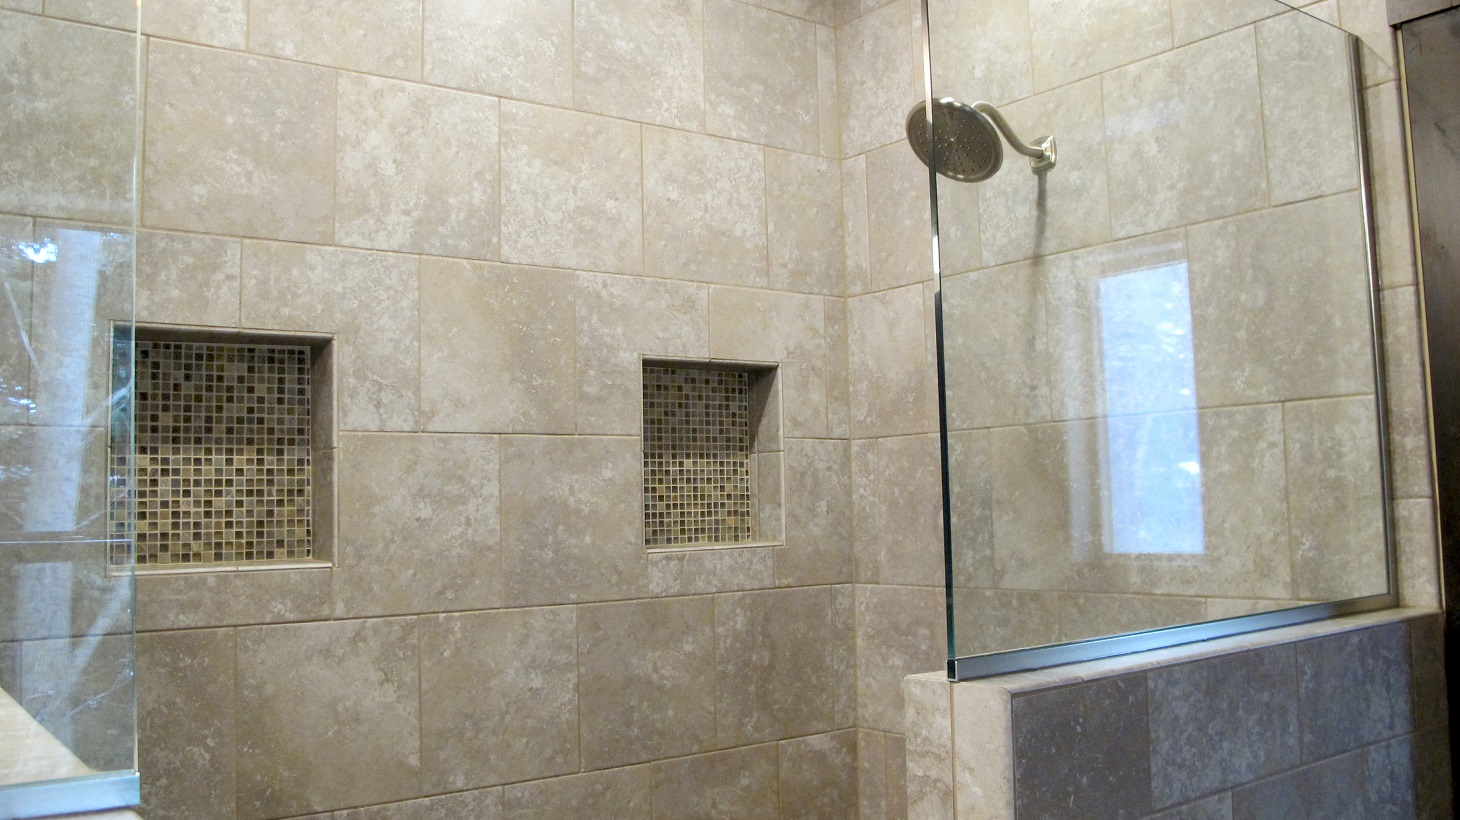 Shower Master Bathroom suite glass partition walk-in niche Daltile Sandalo Castillian Gray with Stone Radiance Saddle blend